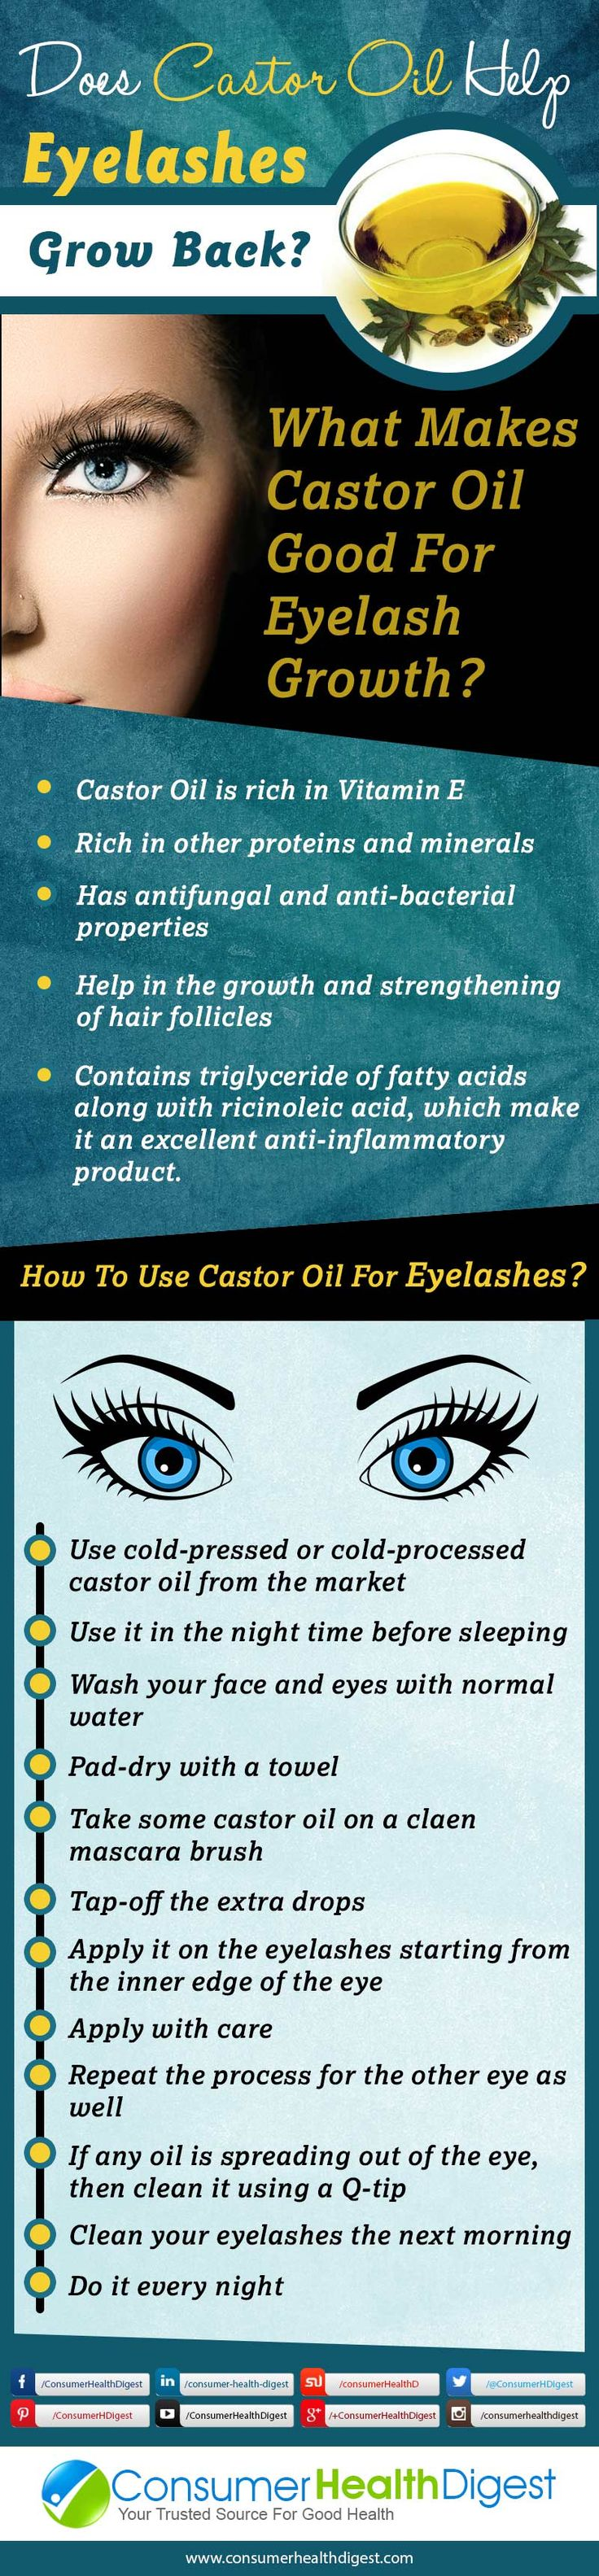 Does Castor Oil Help Eyelashes Grow Back?